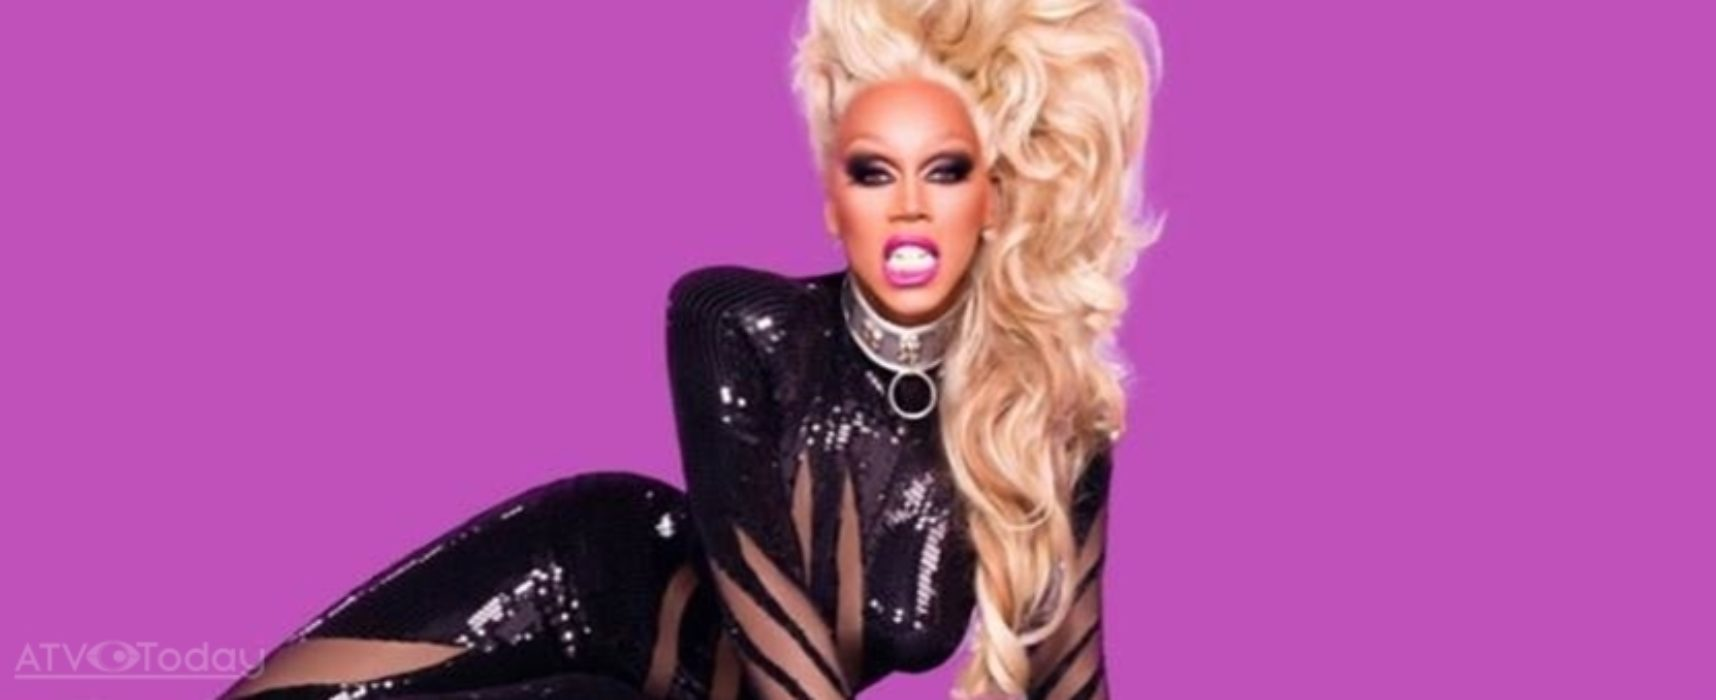 truTV to air further editions of RuPaul's Drag Race